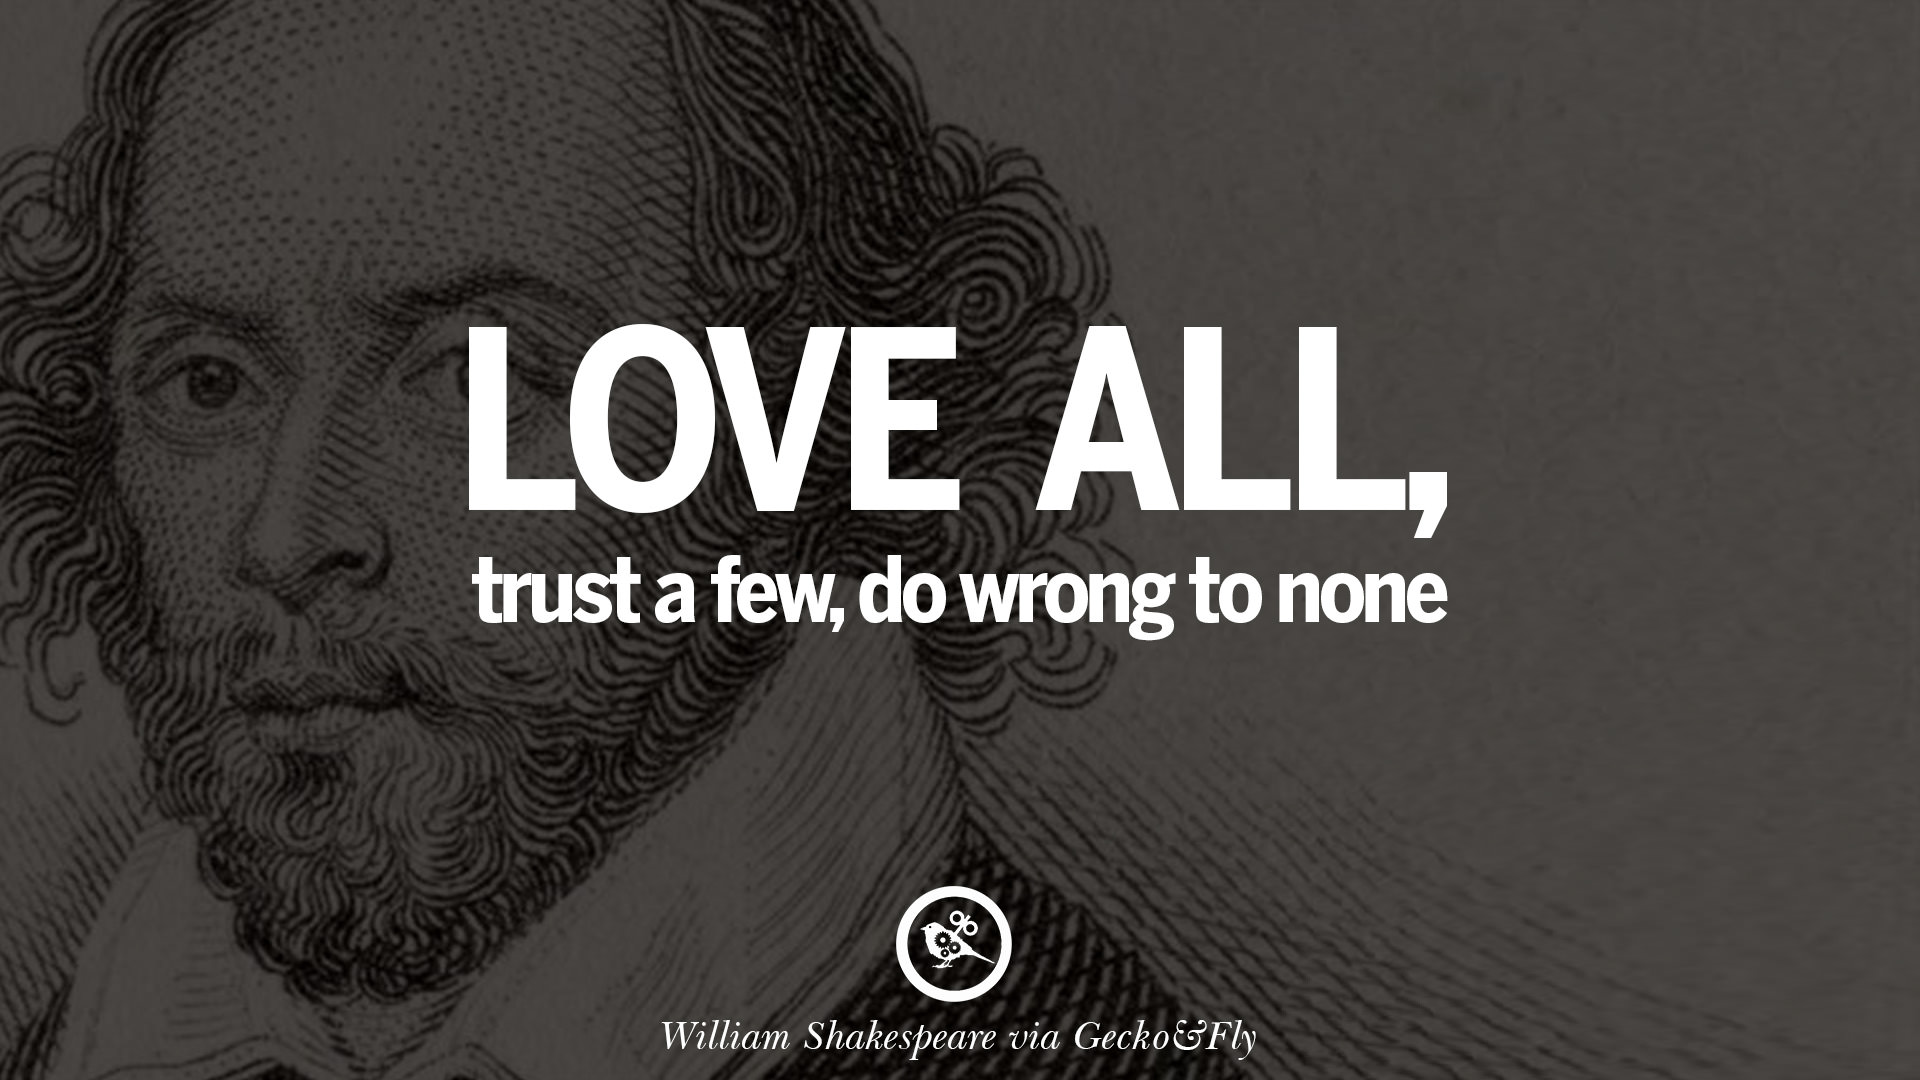 Shakespeare Life Quotes Friendship Quotes William Shakespeare William Shakespeare